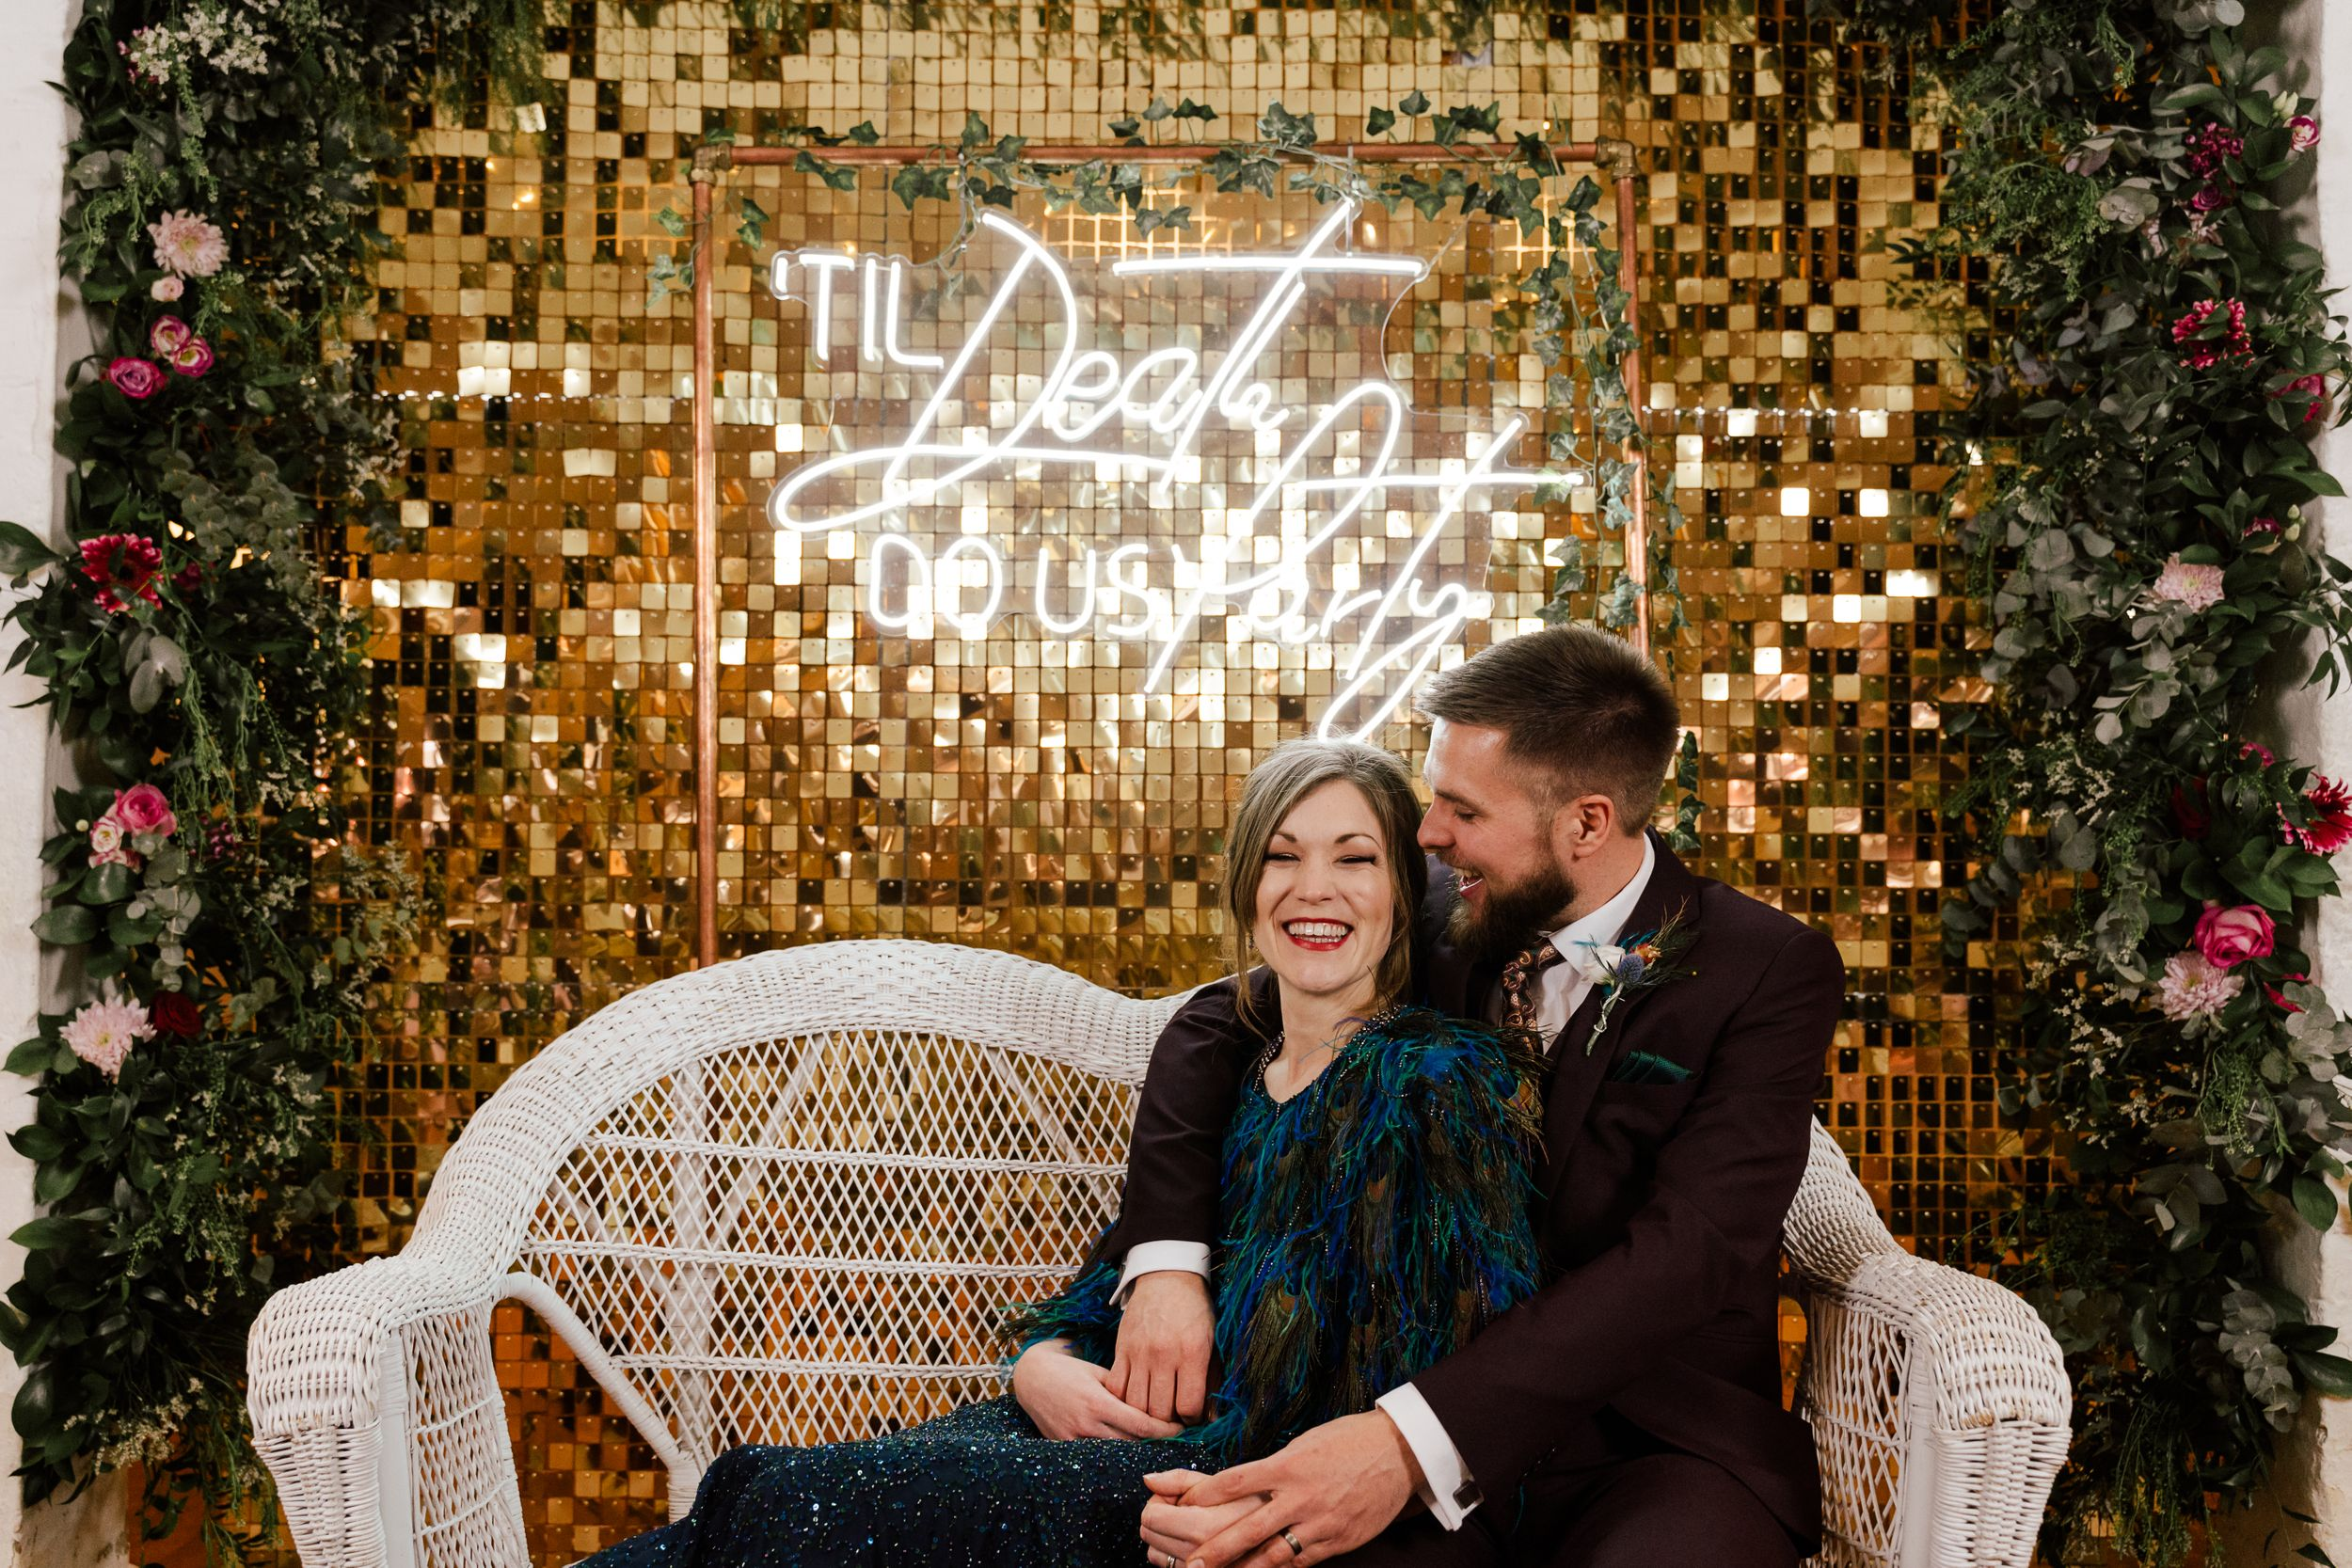 neon light up sign at a winter wedding.